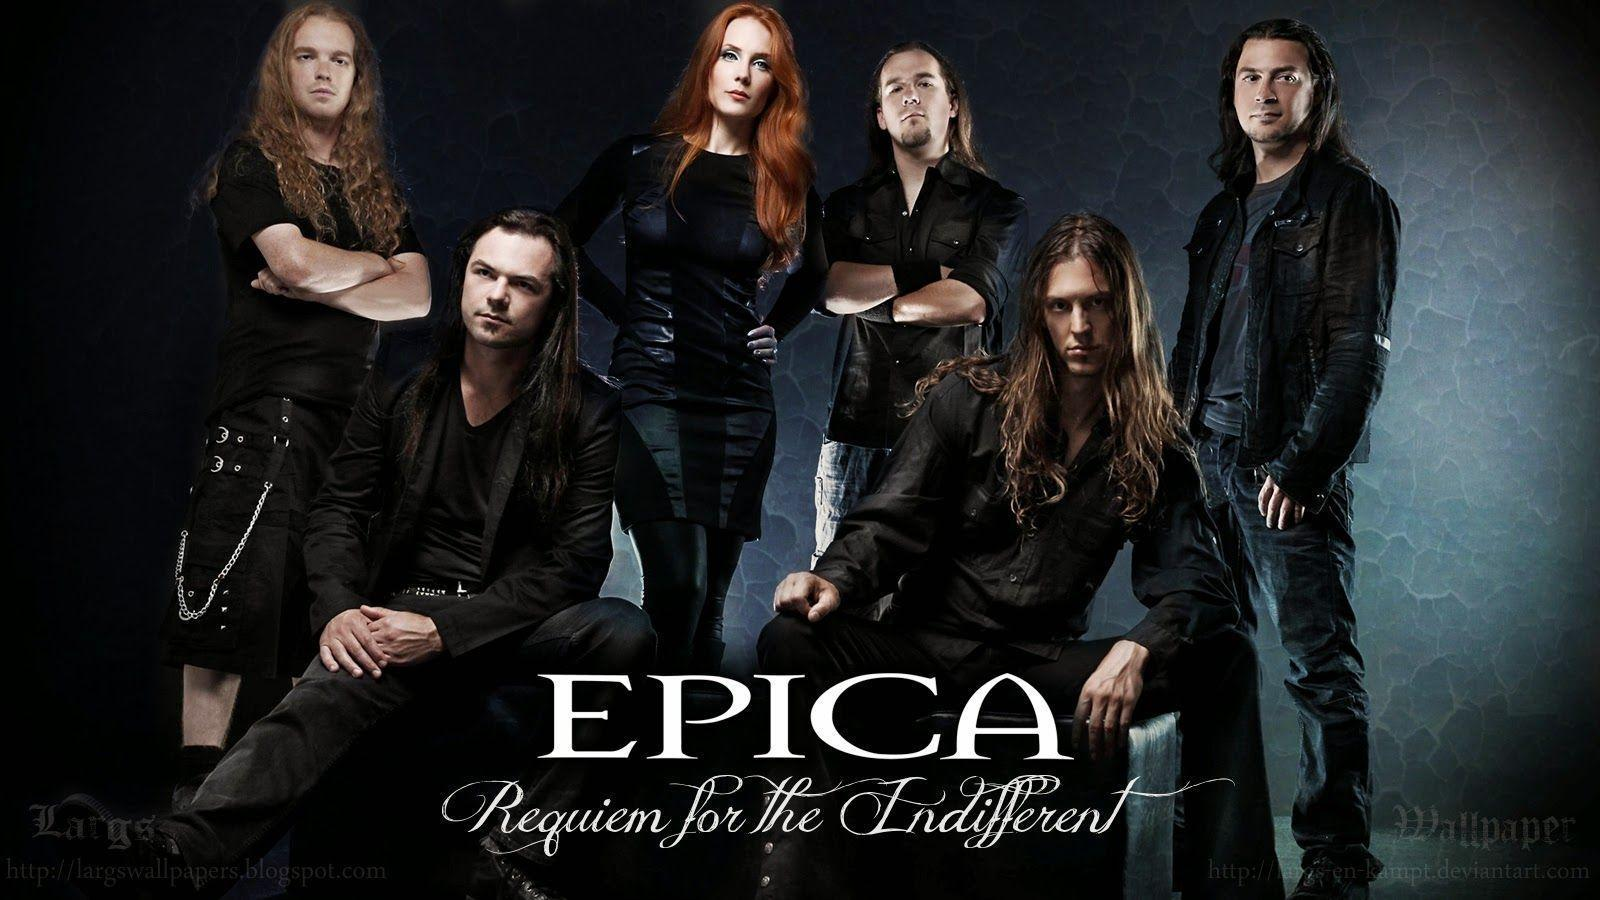 59° EPICA WALLPAPER - REQUIEM FOR THE INDIFFERENT